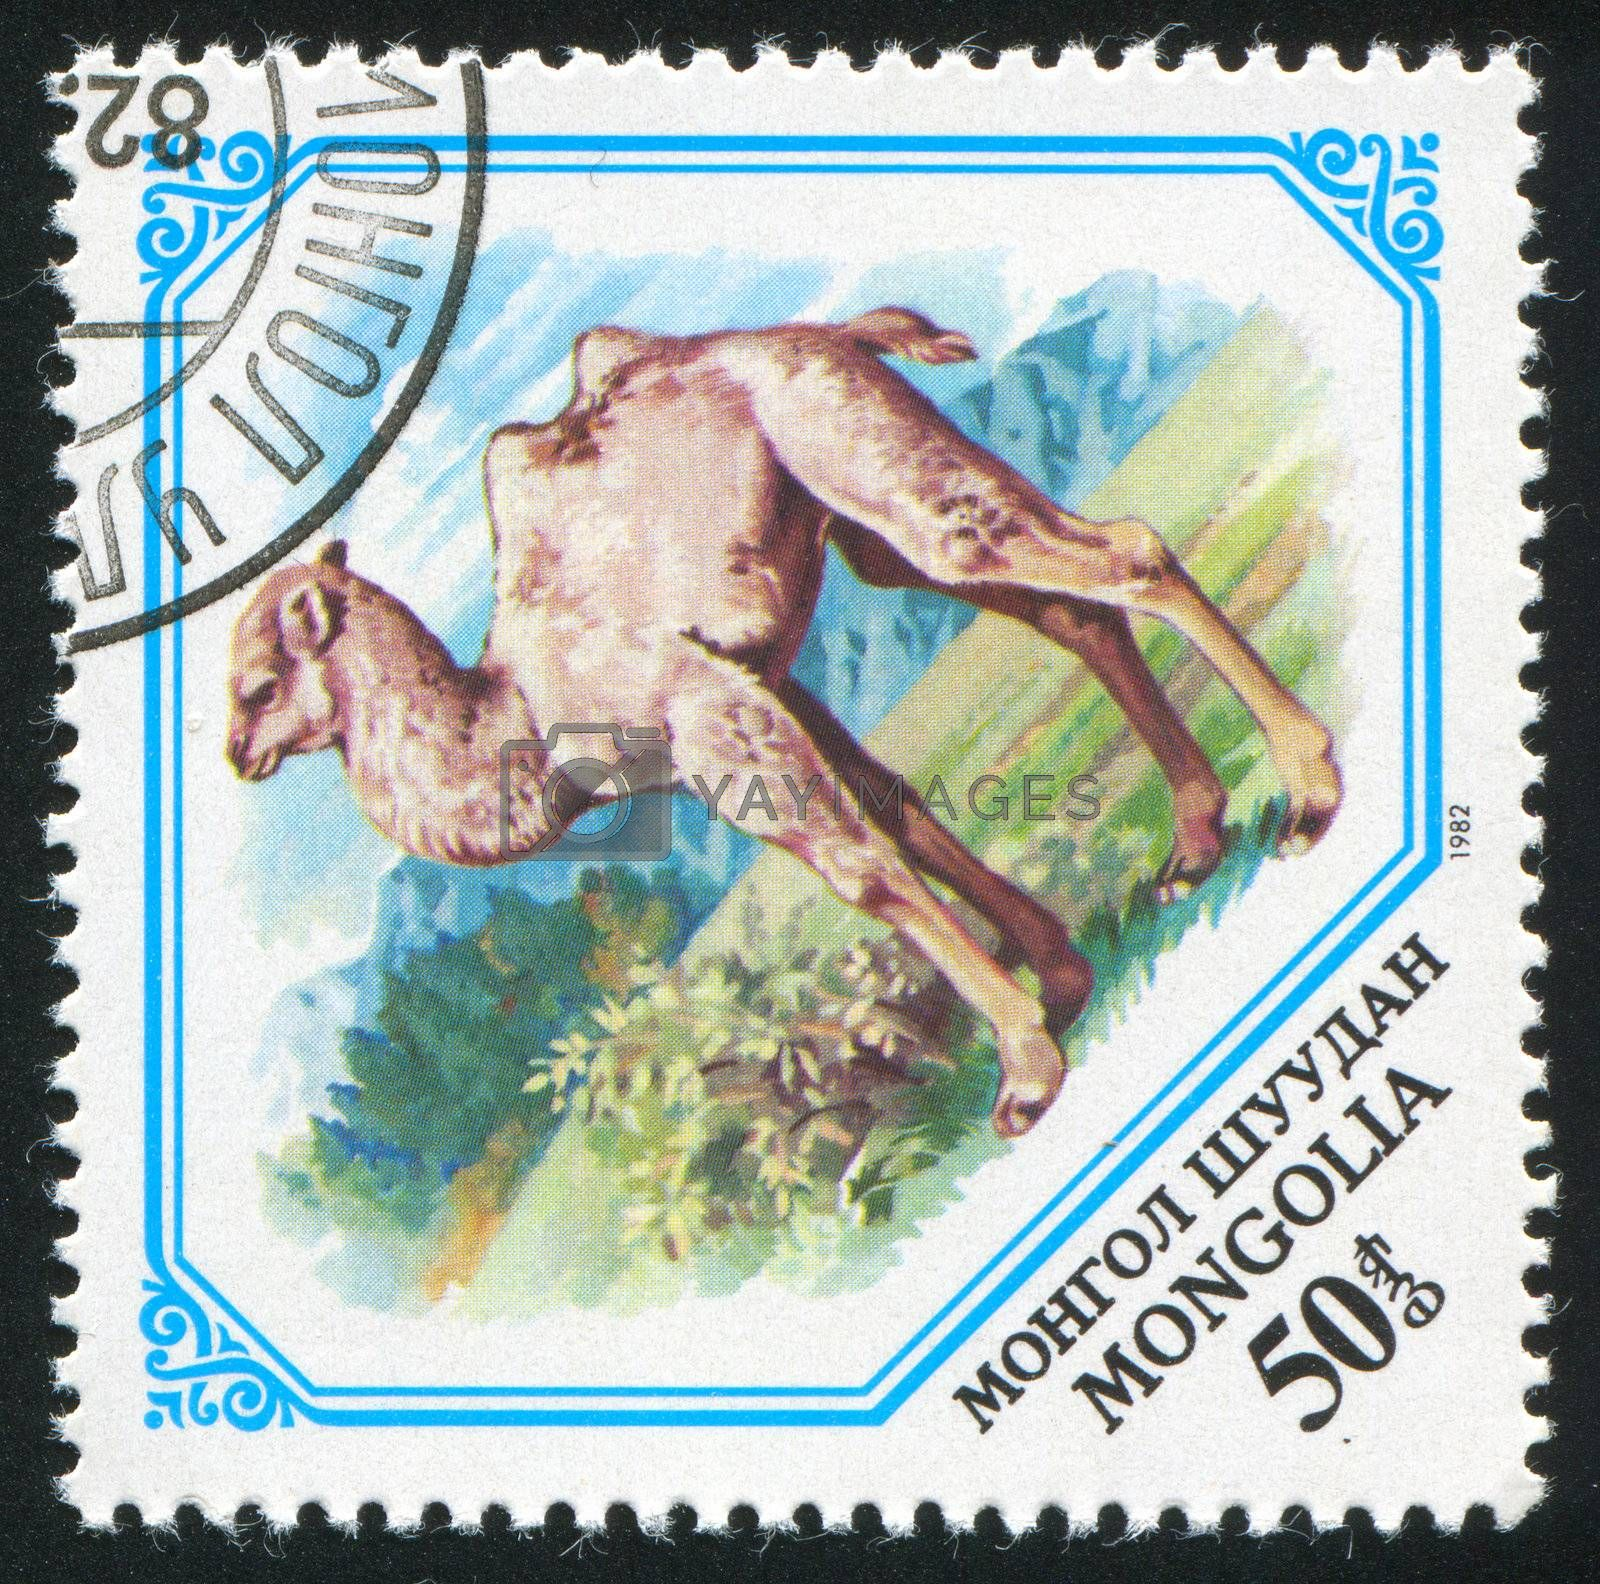 MONGOLIA - CIRCA 1982: stamp printed by Mongolia, shows Camel calf, circa 1982.